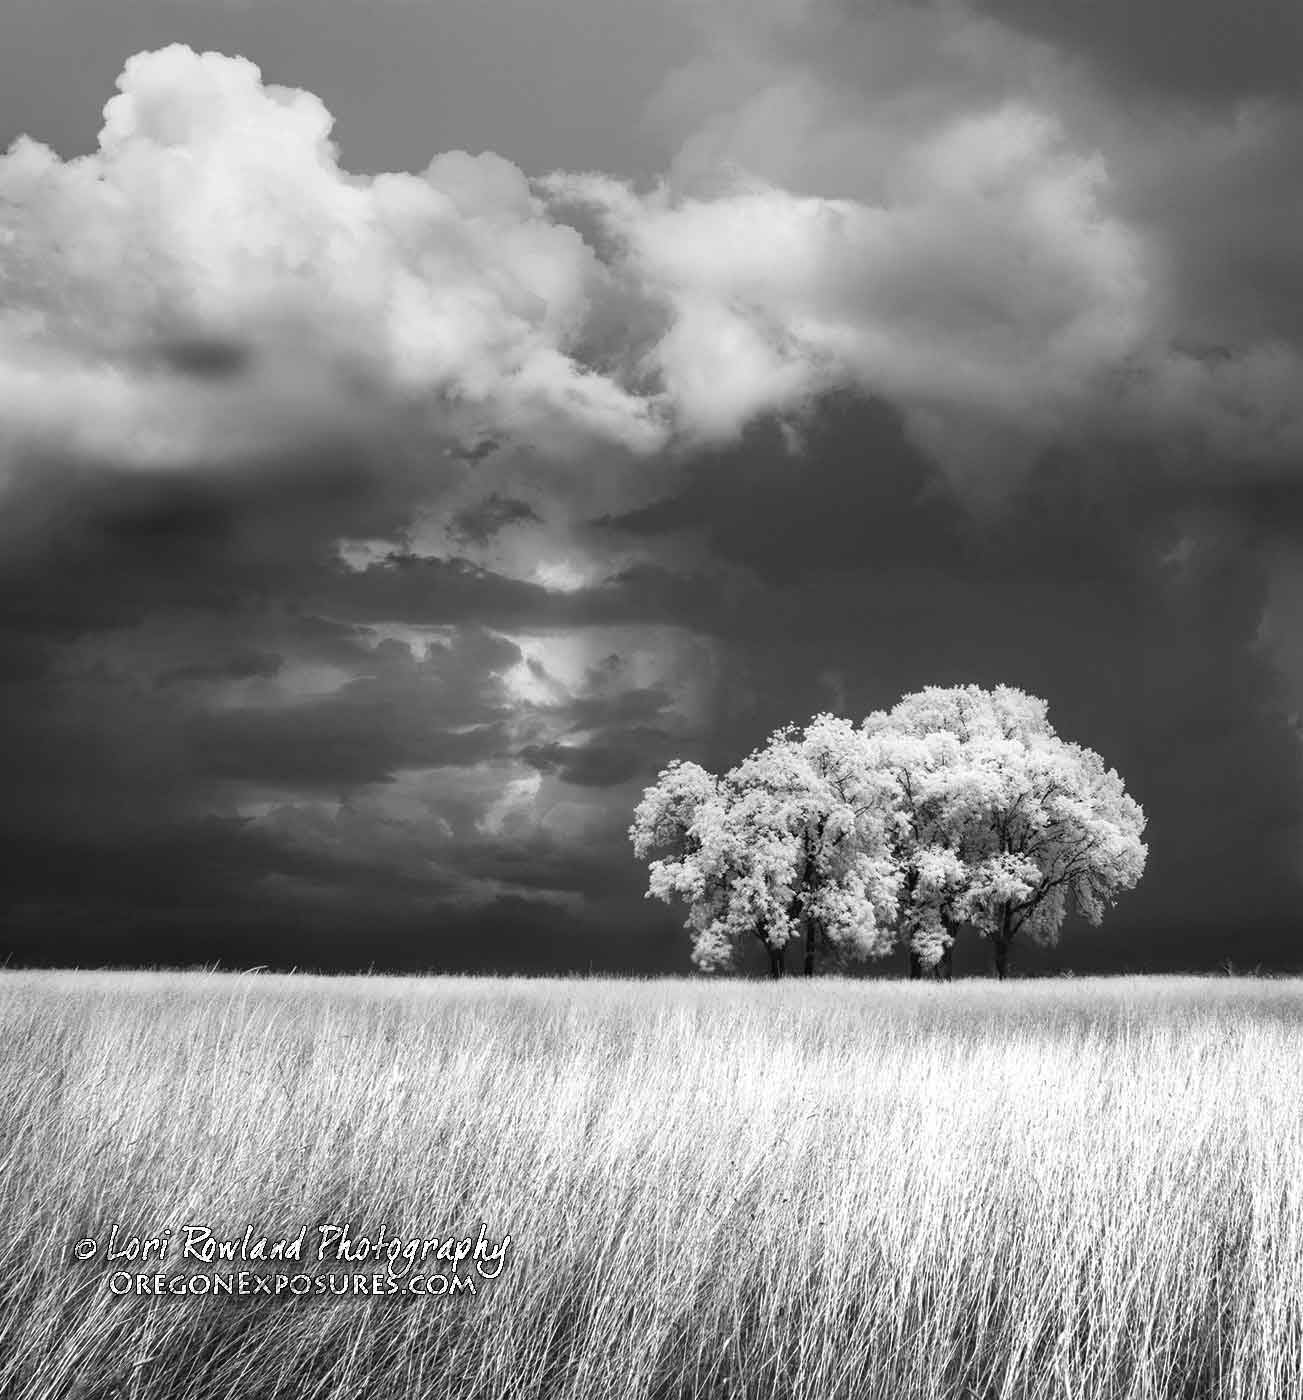 Tree and Storm Clouds in Infrared